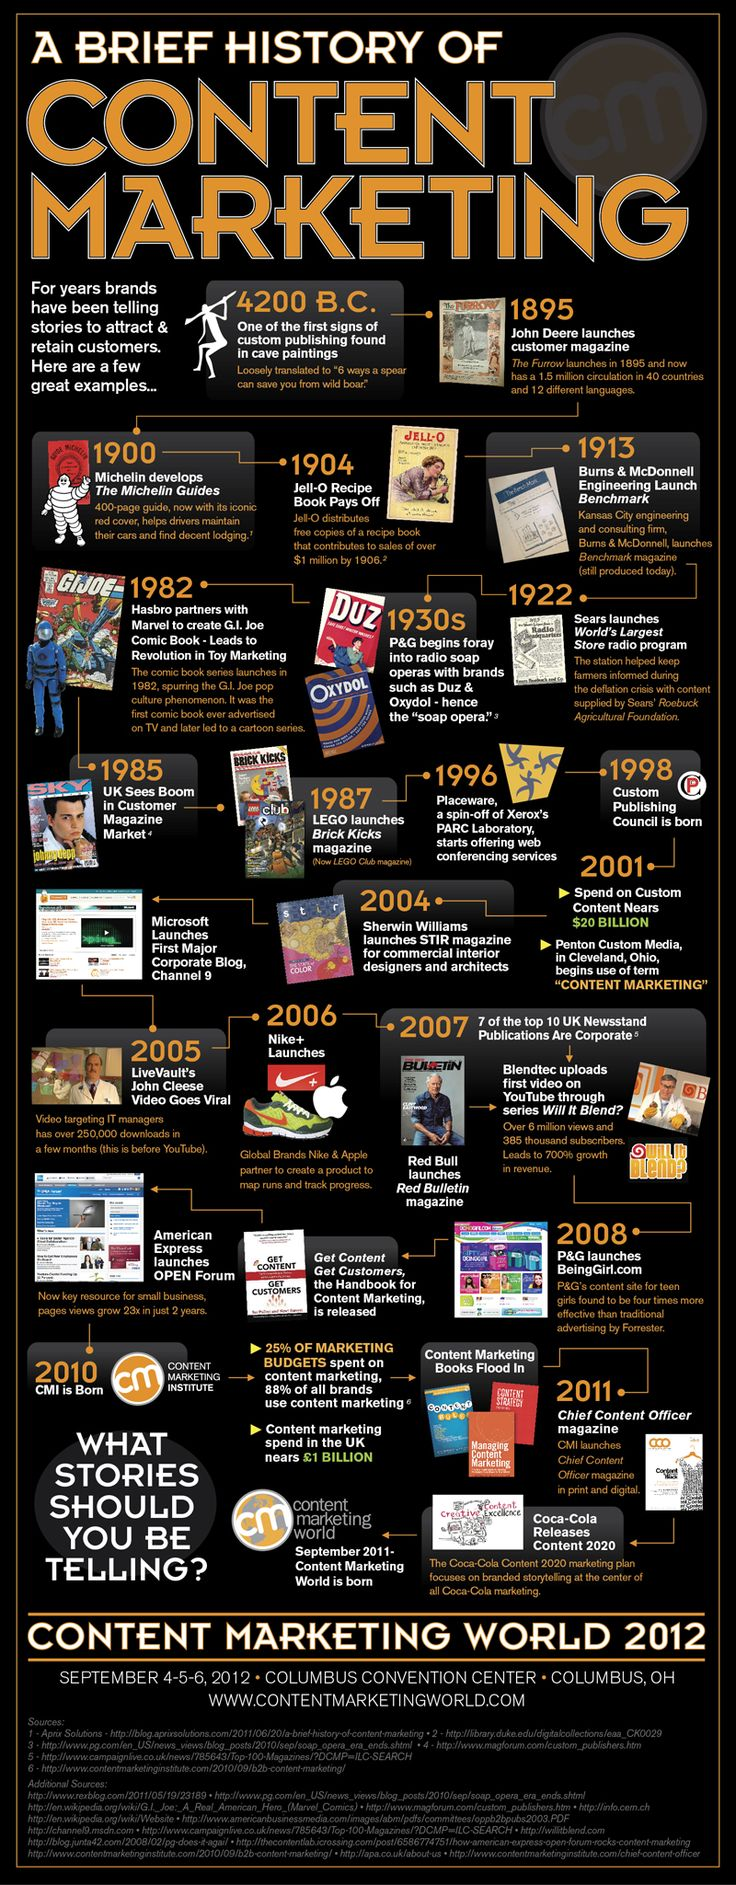 Great infographic about Content Marketing History, from Content Marketing Institute